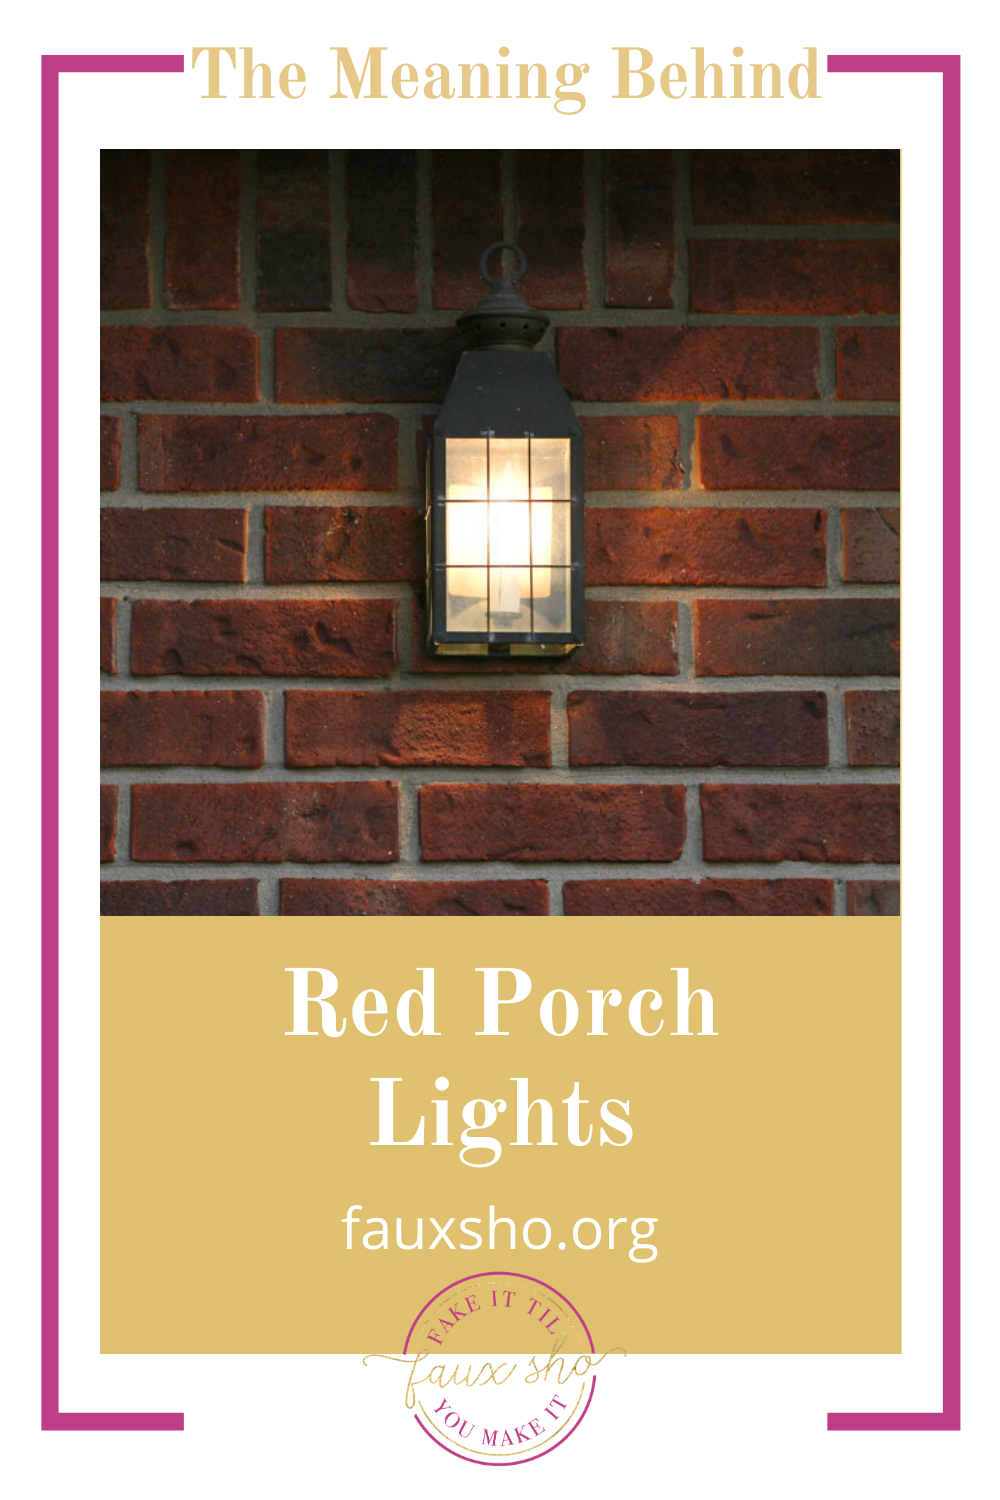 Fauxsho.org will fill you in on all you're missing. Confused by your neighbors' red porch lights? Finally find out what they mean and why people are lighting them!